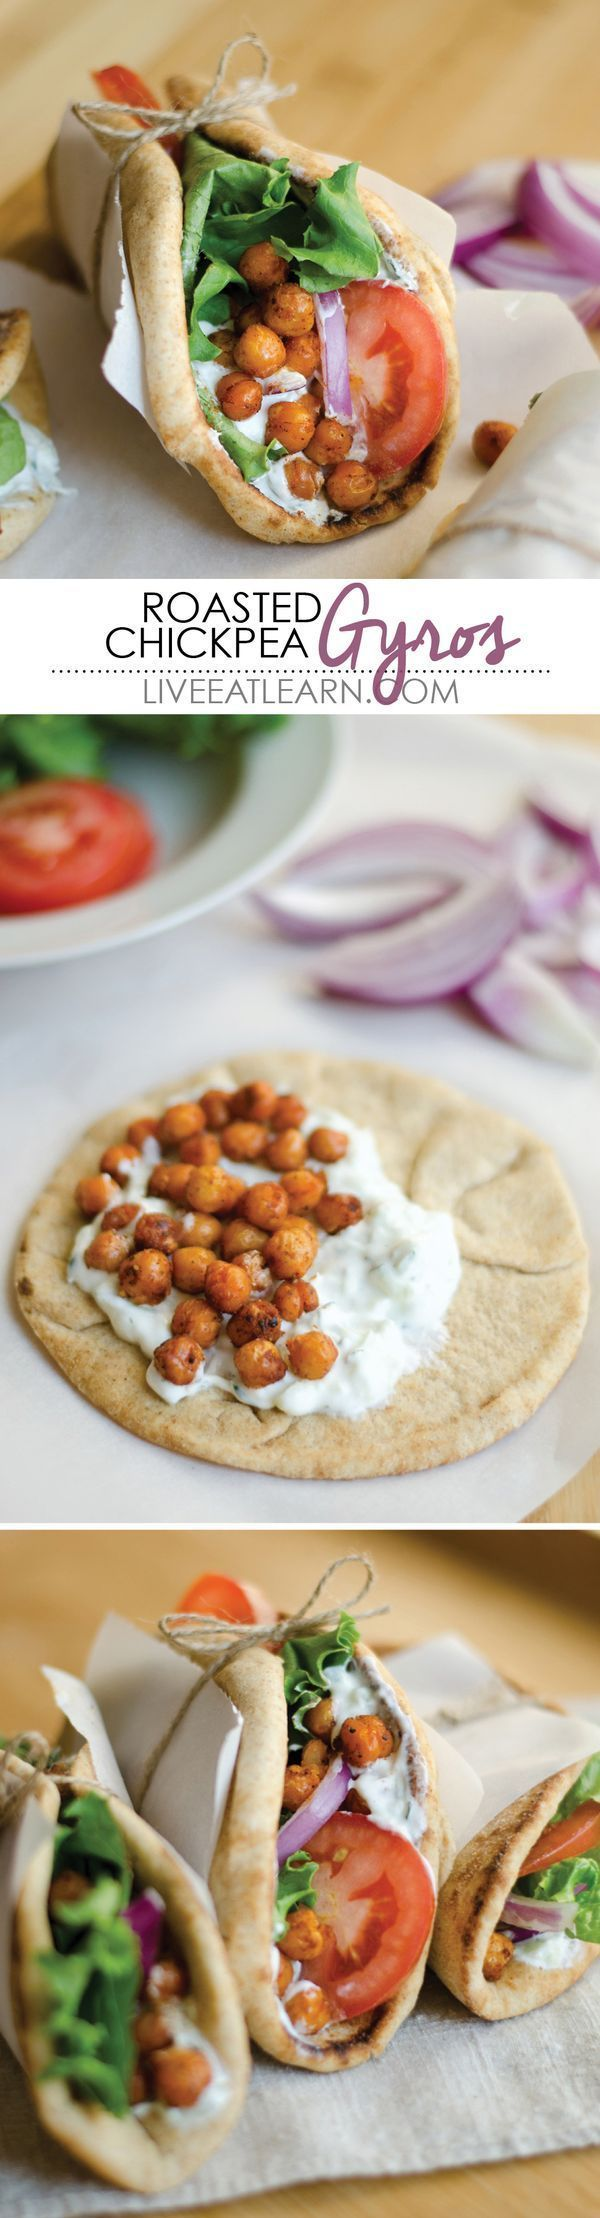 These roasted chickpea gyros with fresh and simple tzatziki sauce will become your next go-to healthy dinner recipe. Vegetarian, easy, flexible, and so delicious!